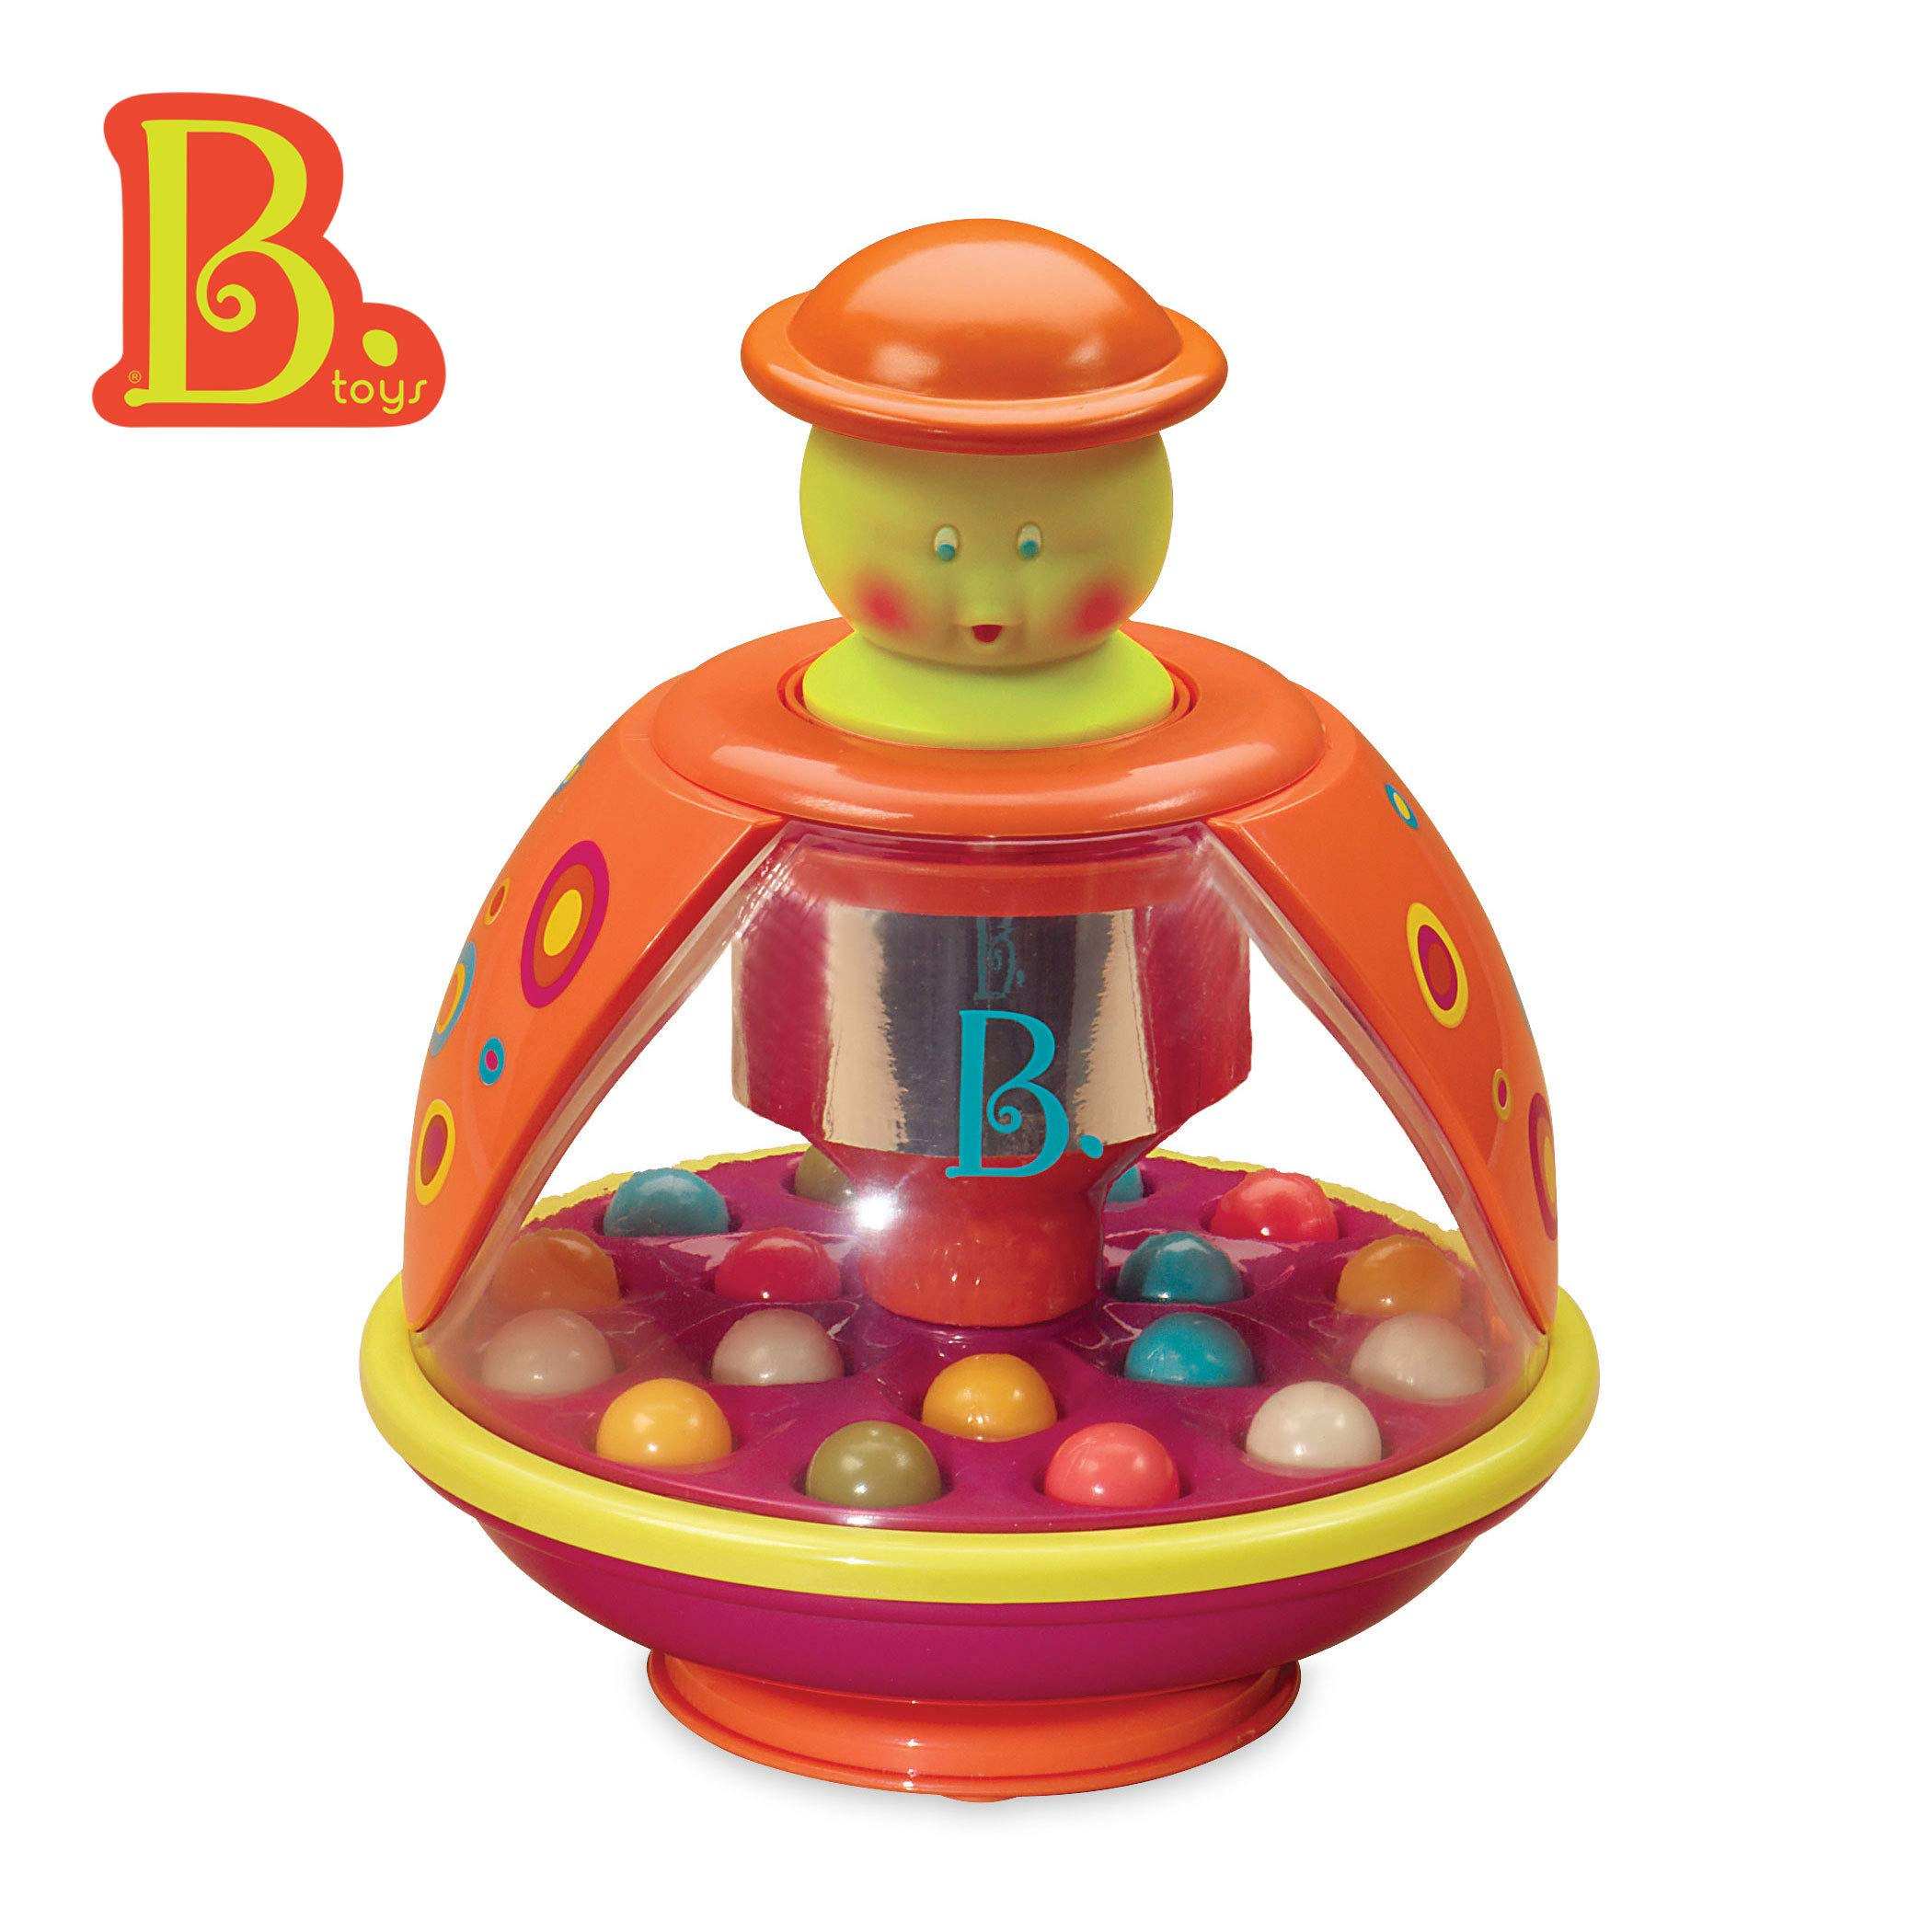 B. Toys - Poppitoppy - Ball Popper Toy Tumble Top - Spinning Toys for Toddlers 1 Year + by B. toys by Battat